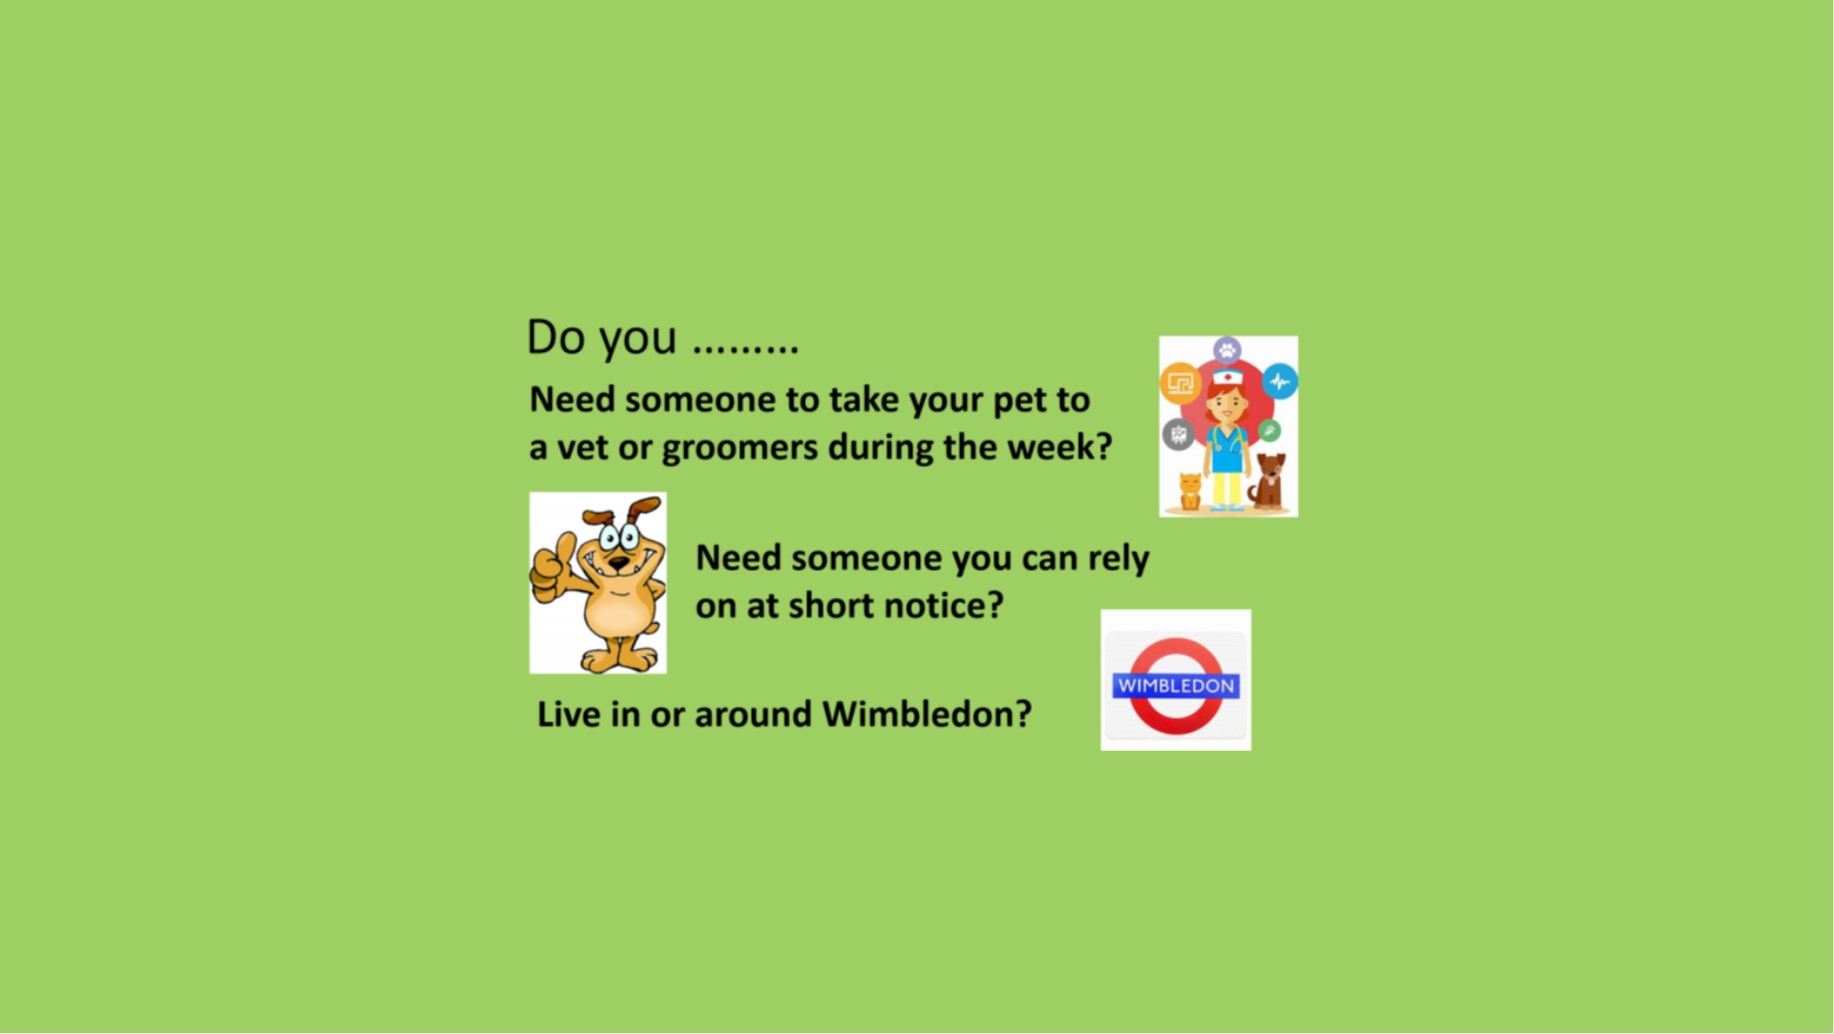 Take pet to vet or groomers